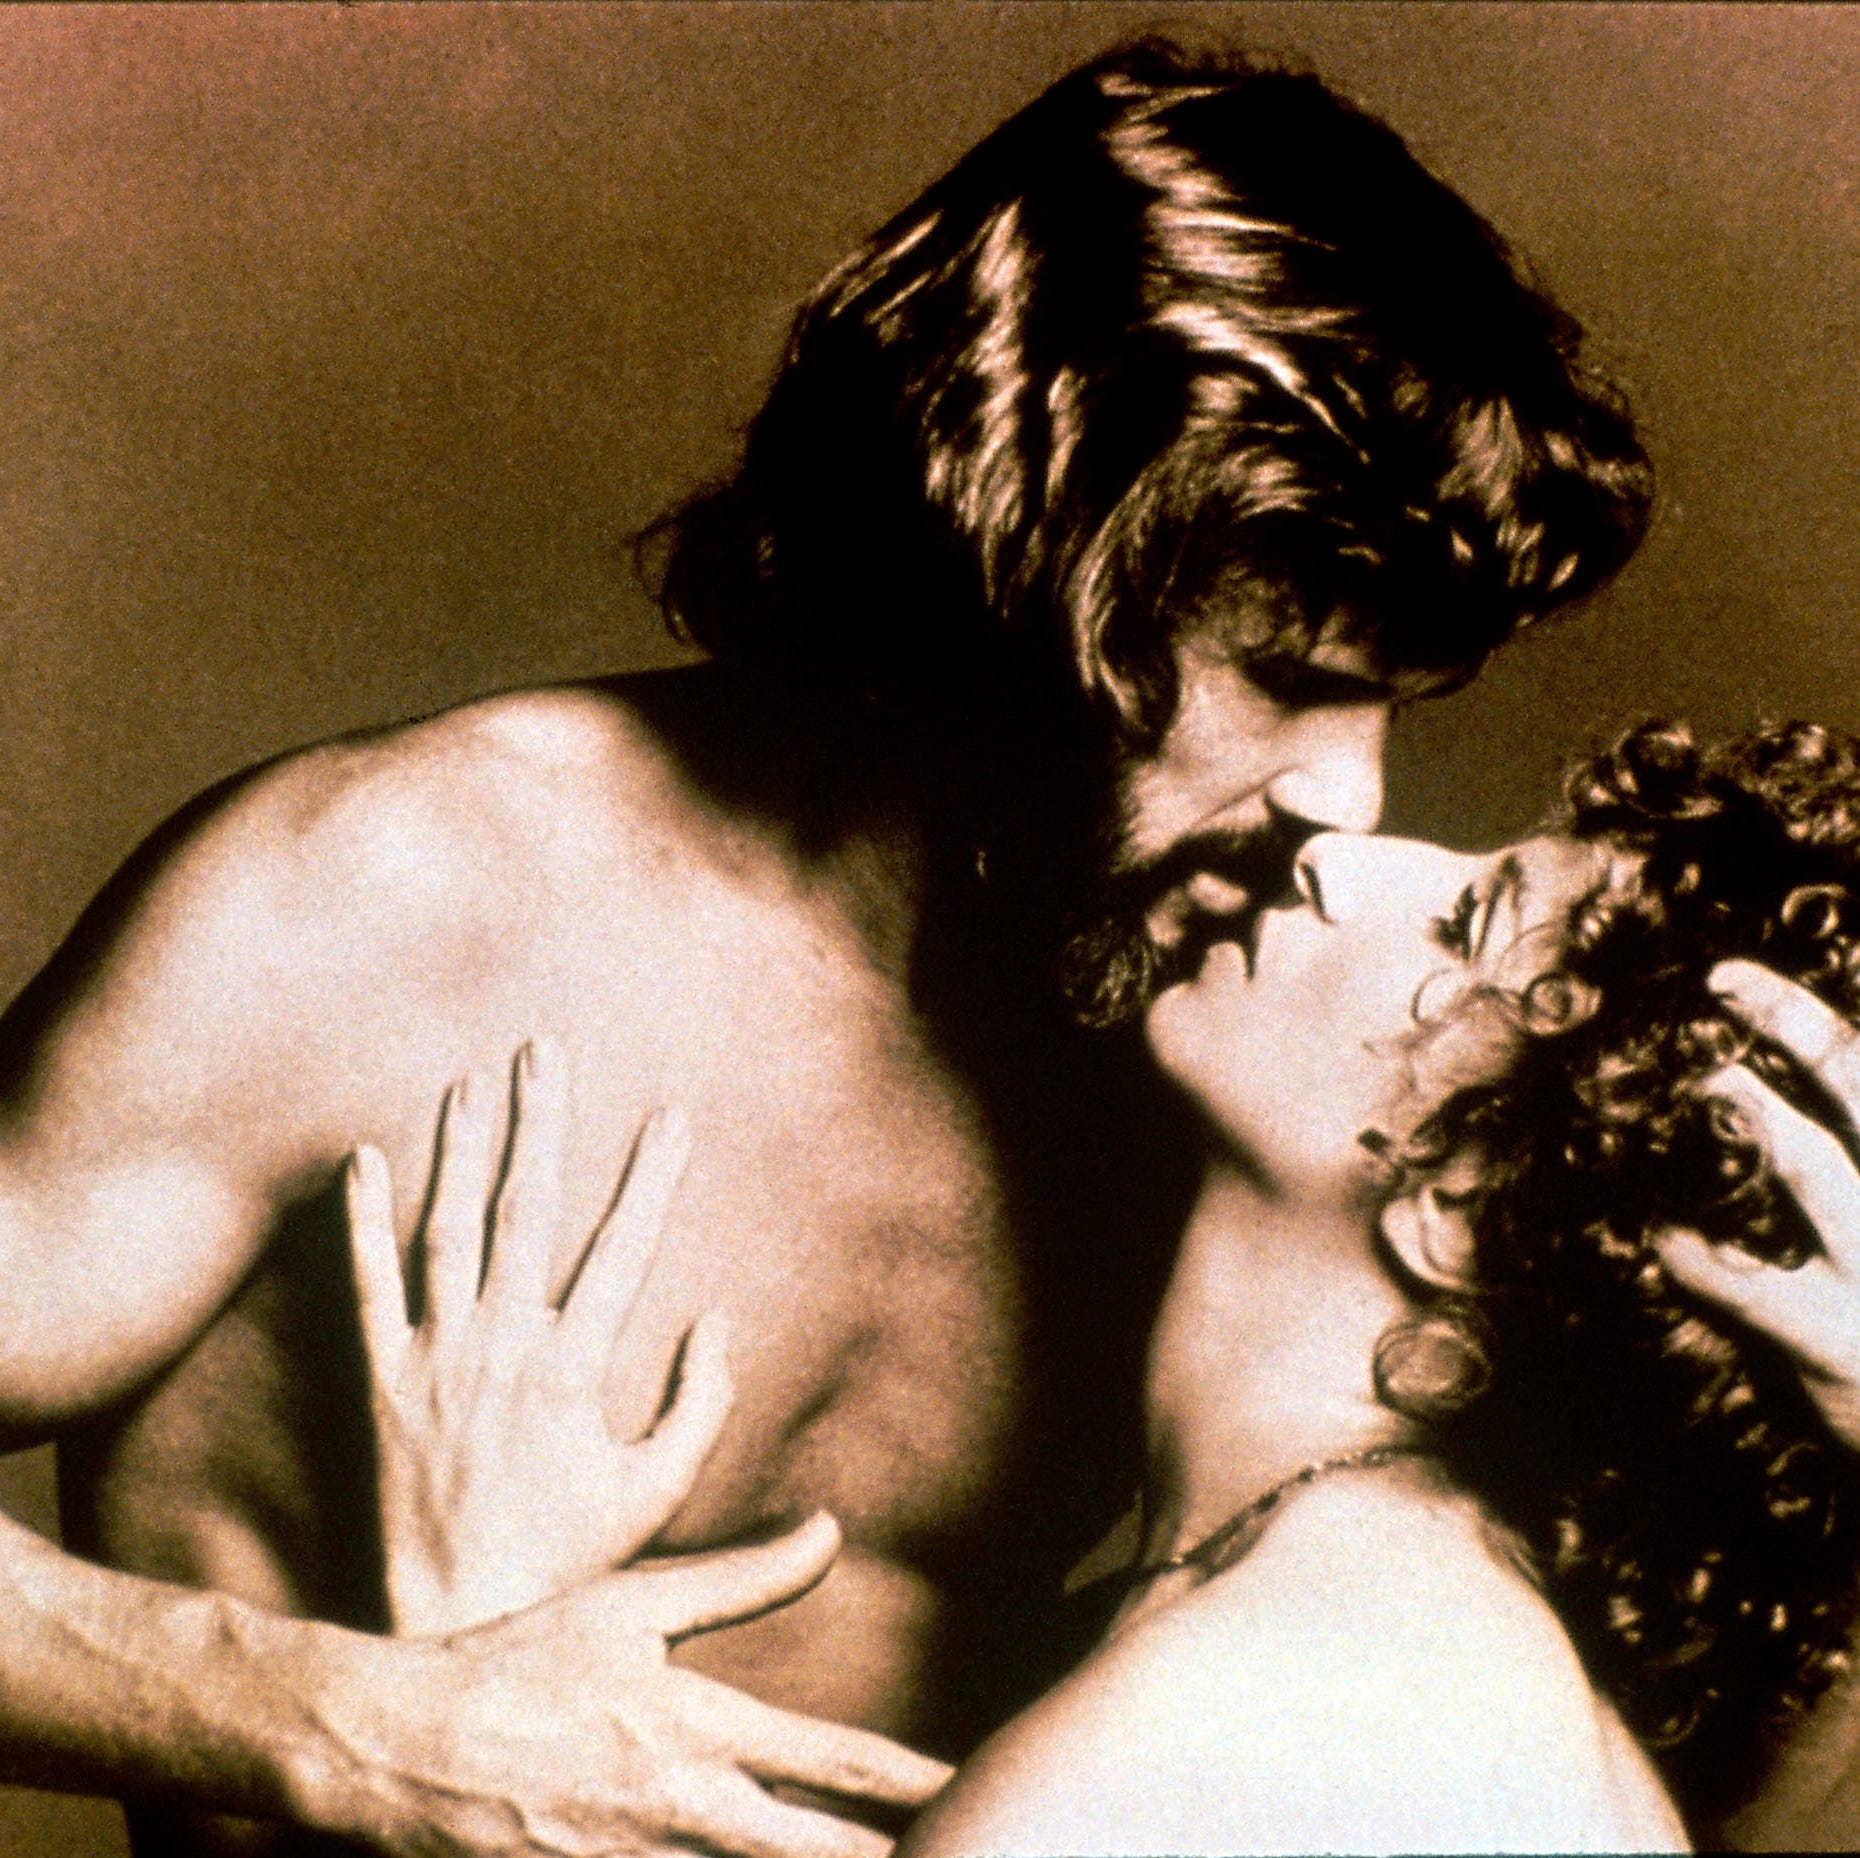 """This image of Kris Kristofferson and Barbra Streisand was use to promote 1976's """"A Star Is Born."""""""